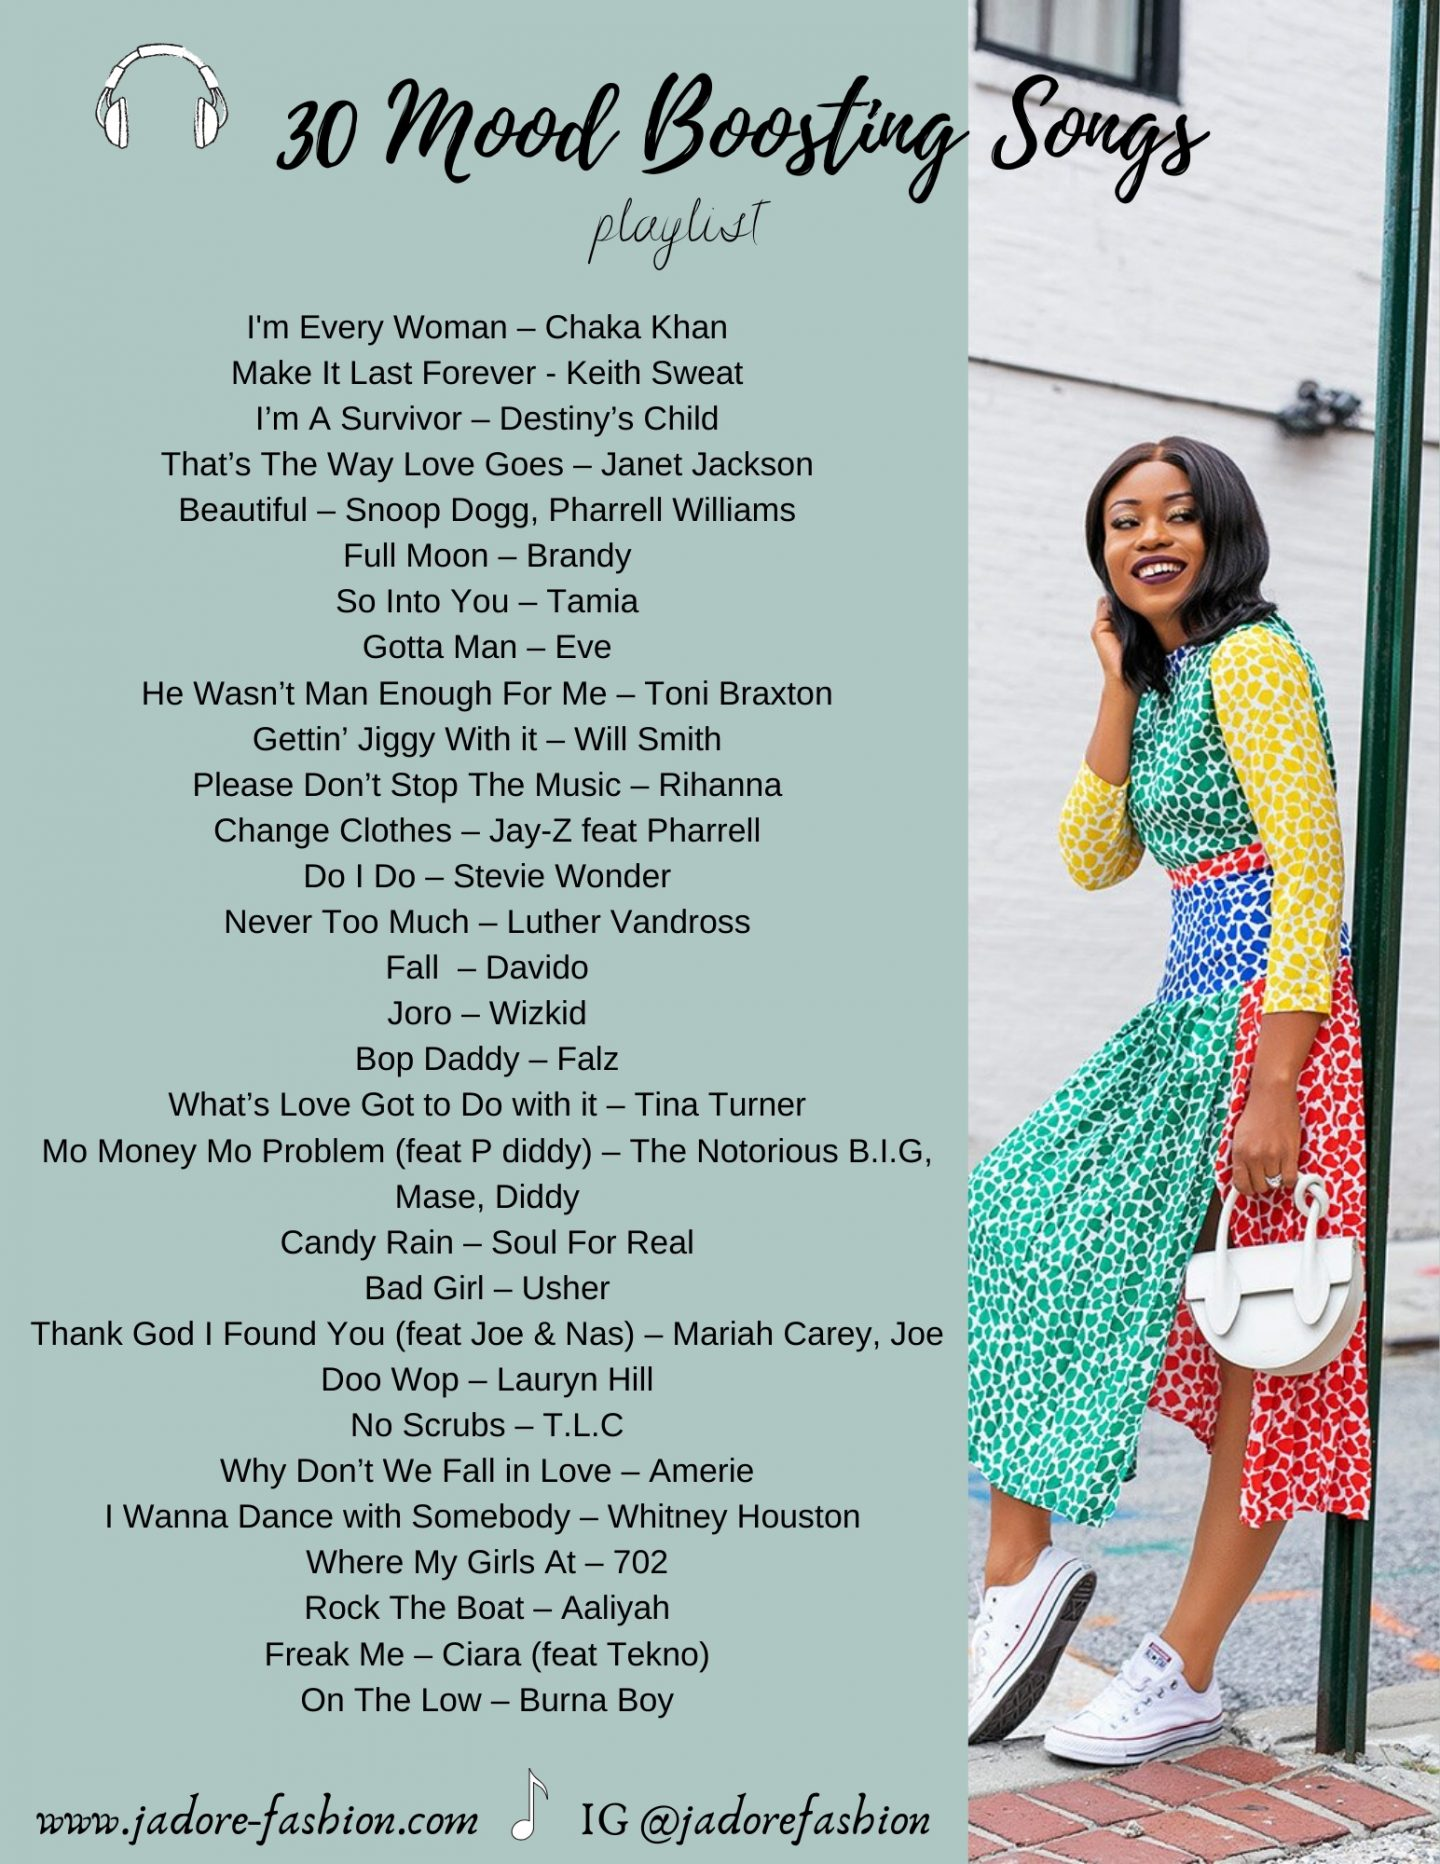 30 Mood Boosting Songs by Stella Adewunmi of Jadore-fashion